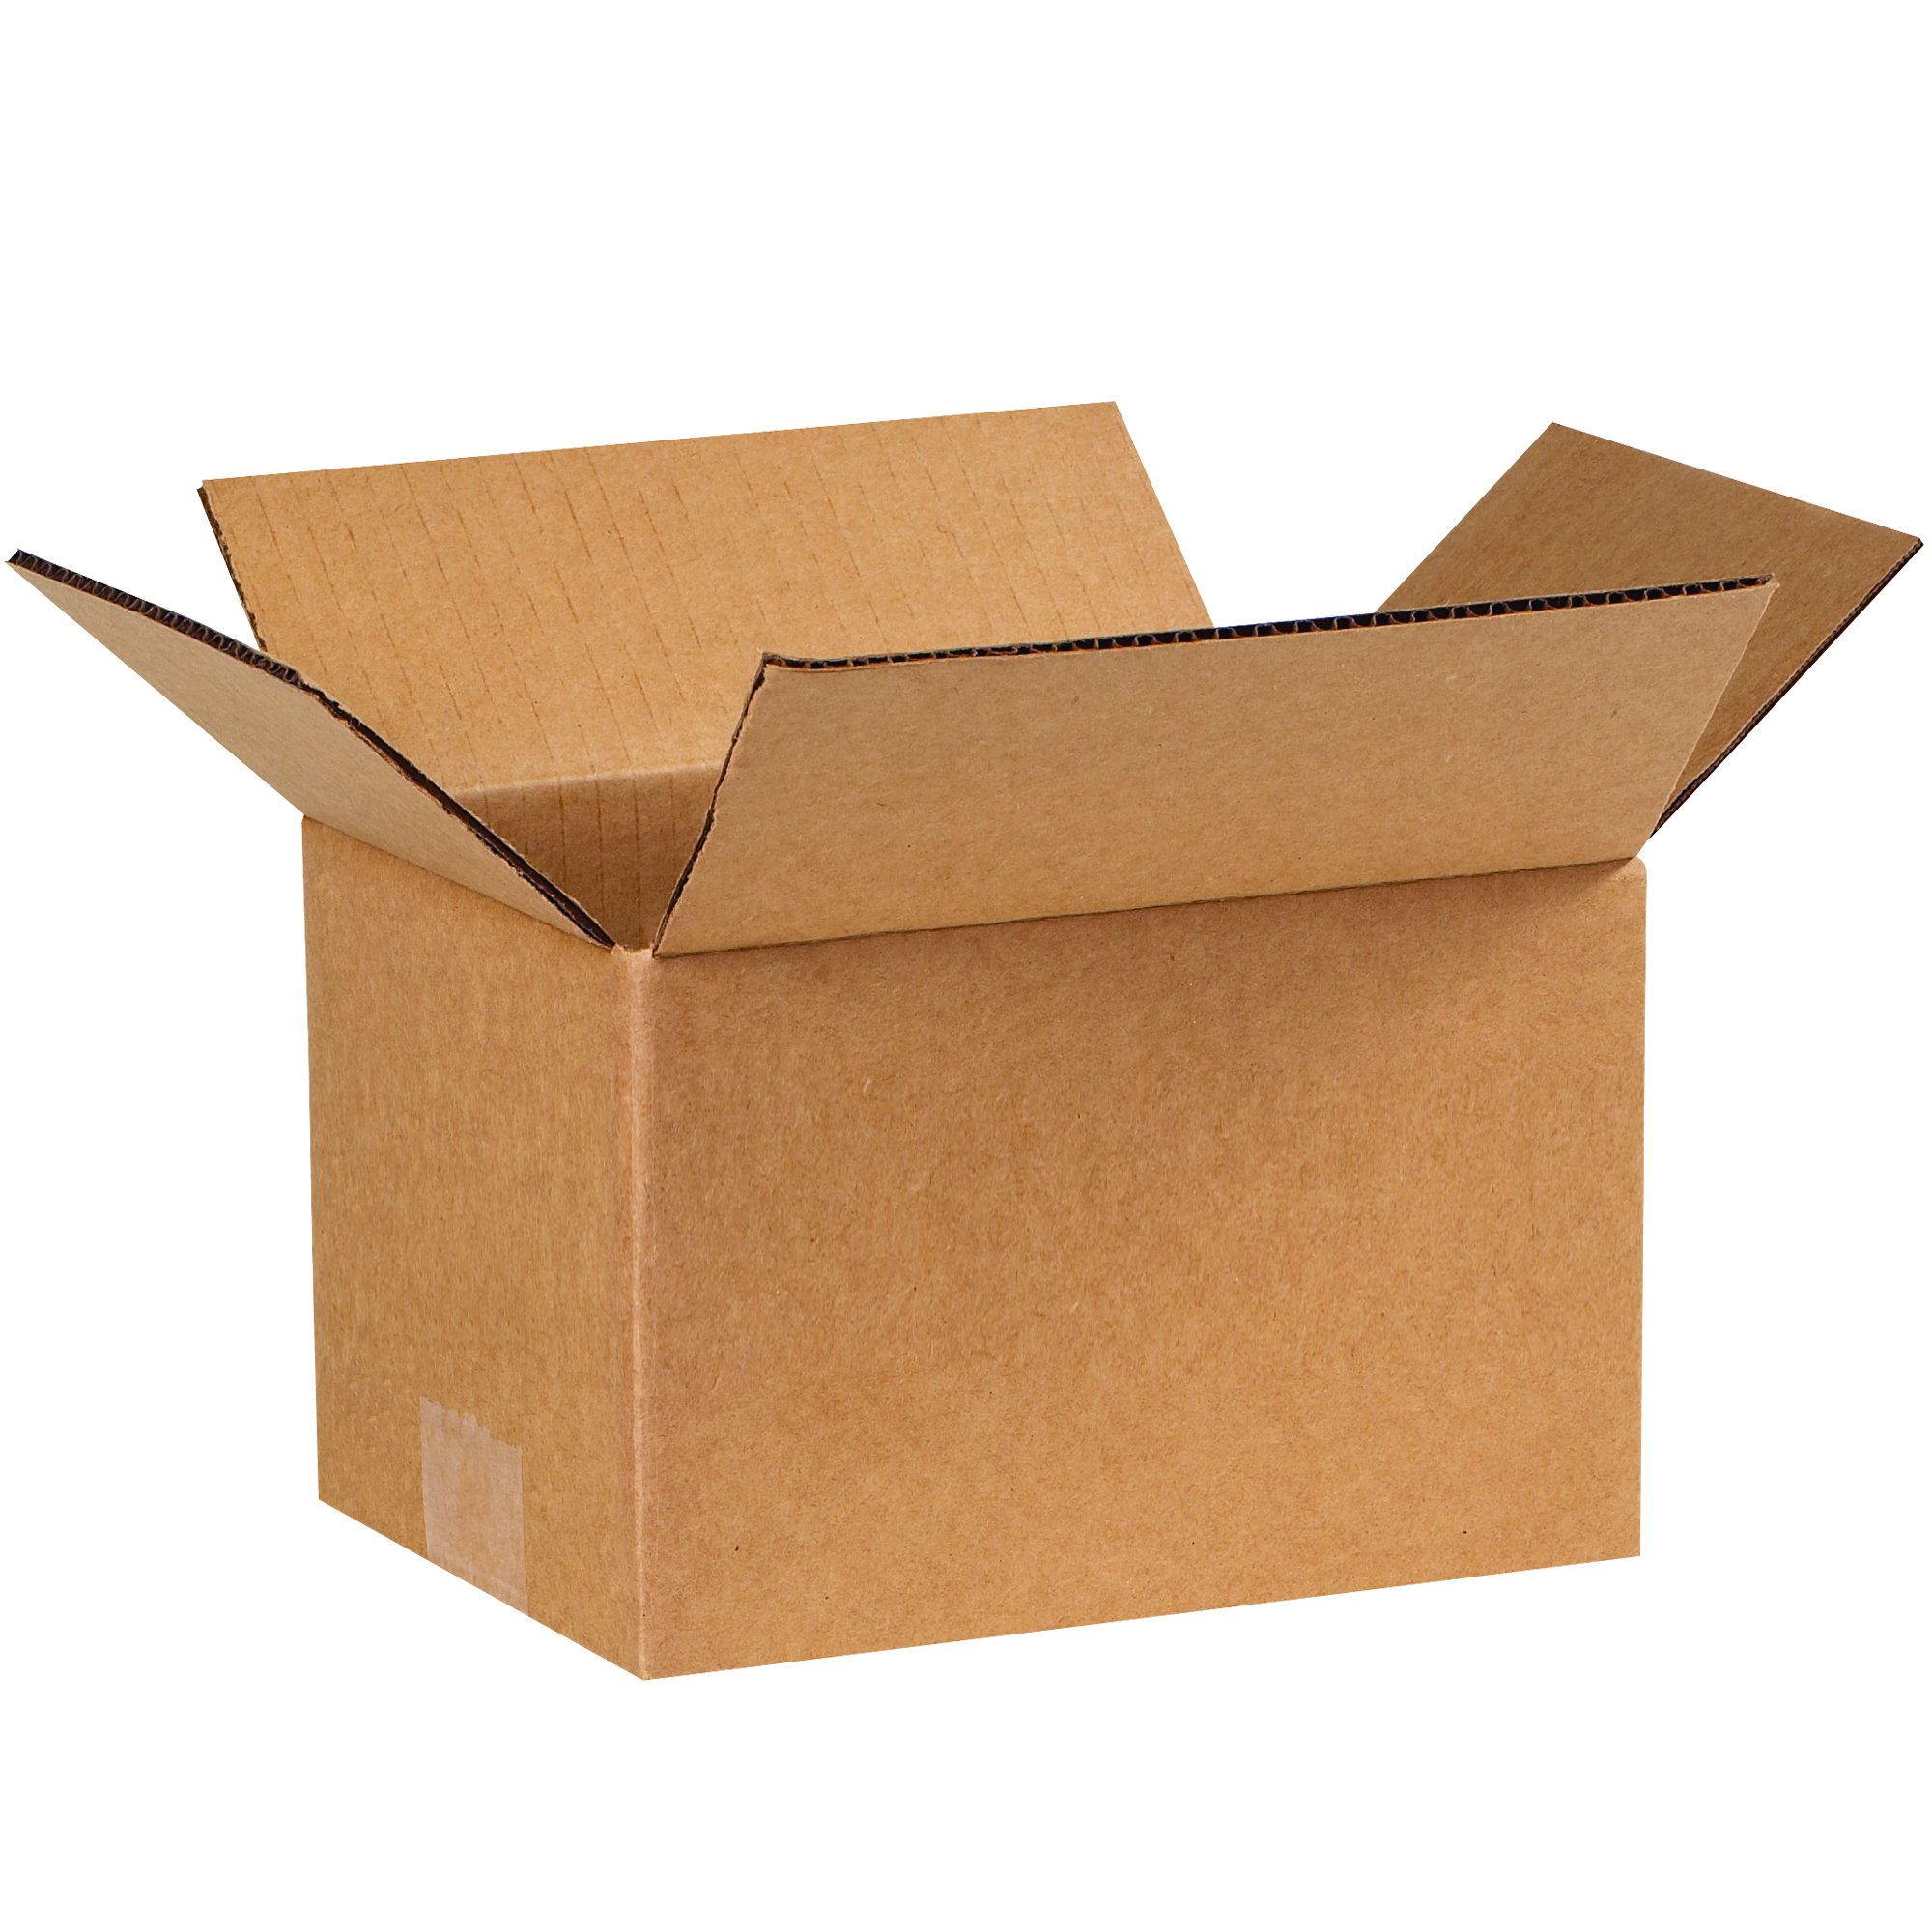 Partners Brand P865 Corrugated Boxes, 8'' L x 6'' W x 5'' H, Kraft (Pack of 25)